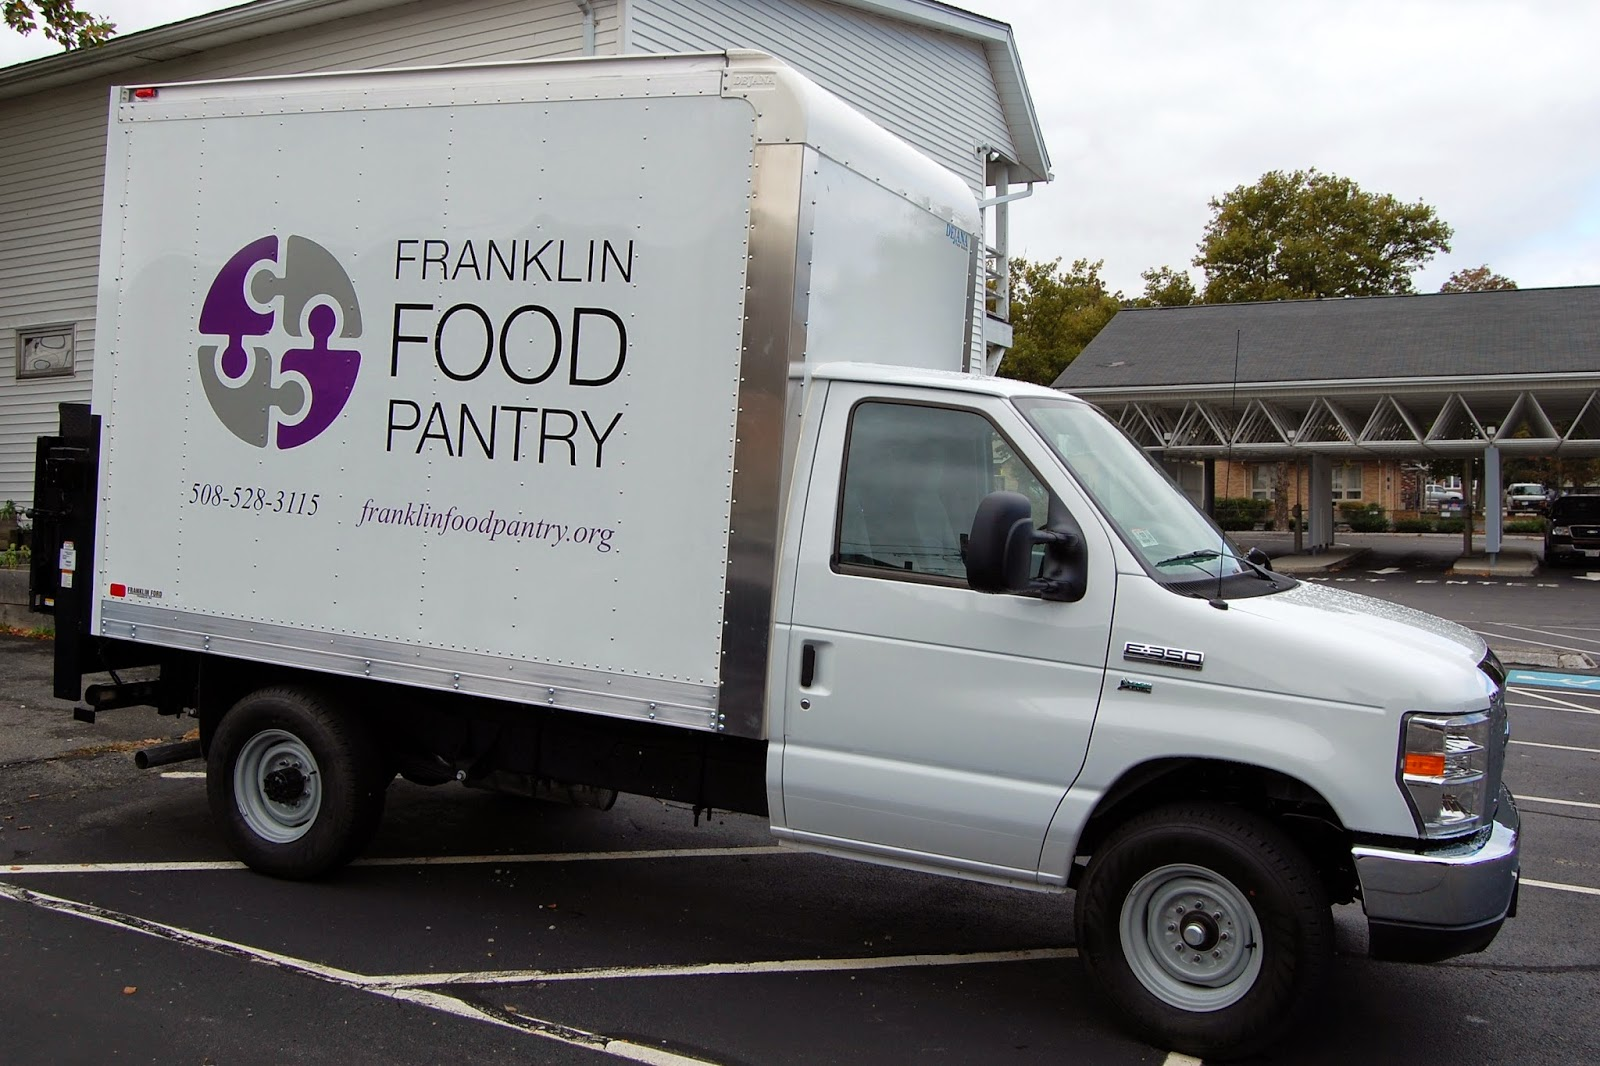 the Franklin Food Pantry's mobile pantry